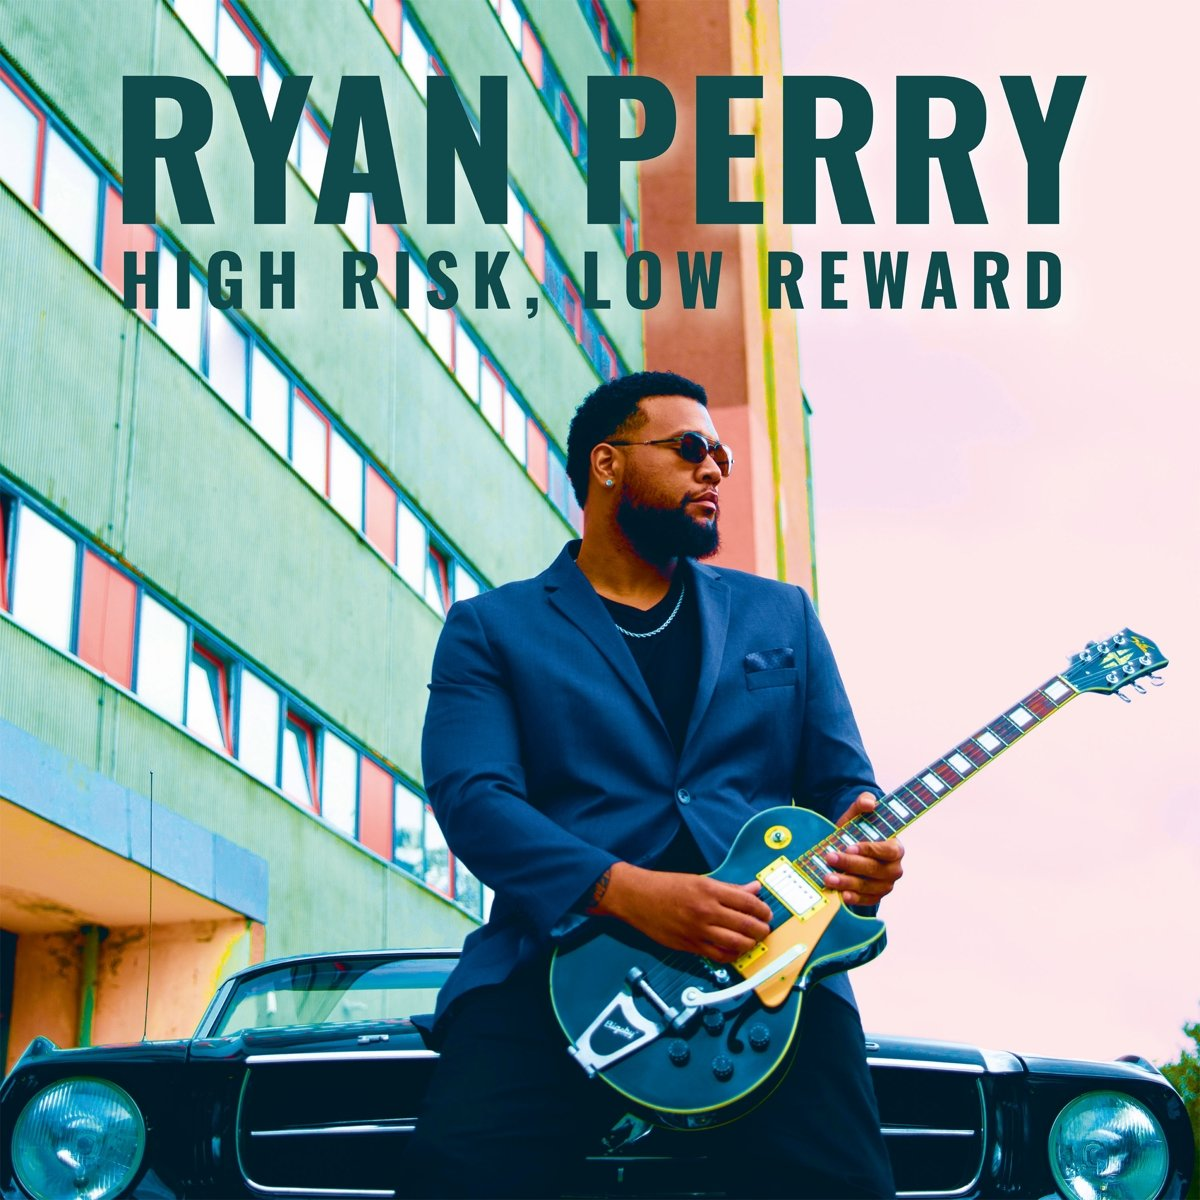 Ryan Perry High Risk Low Reward